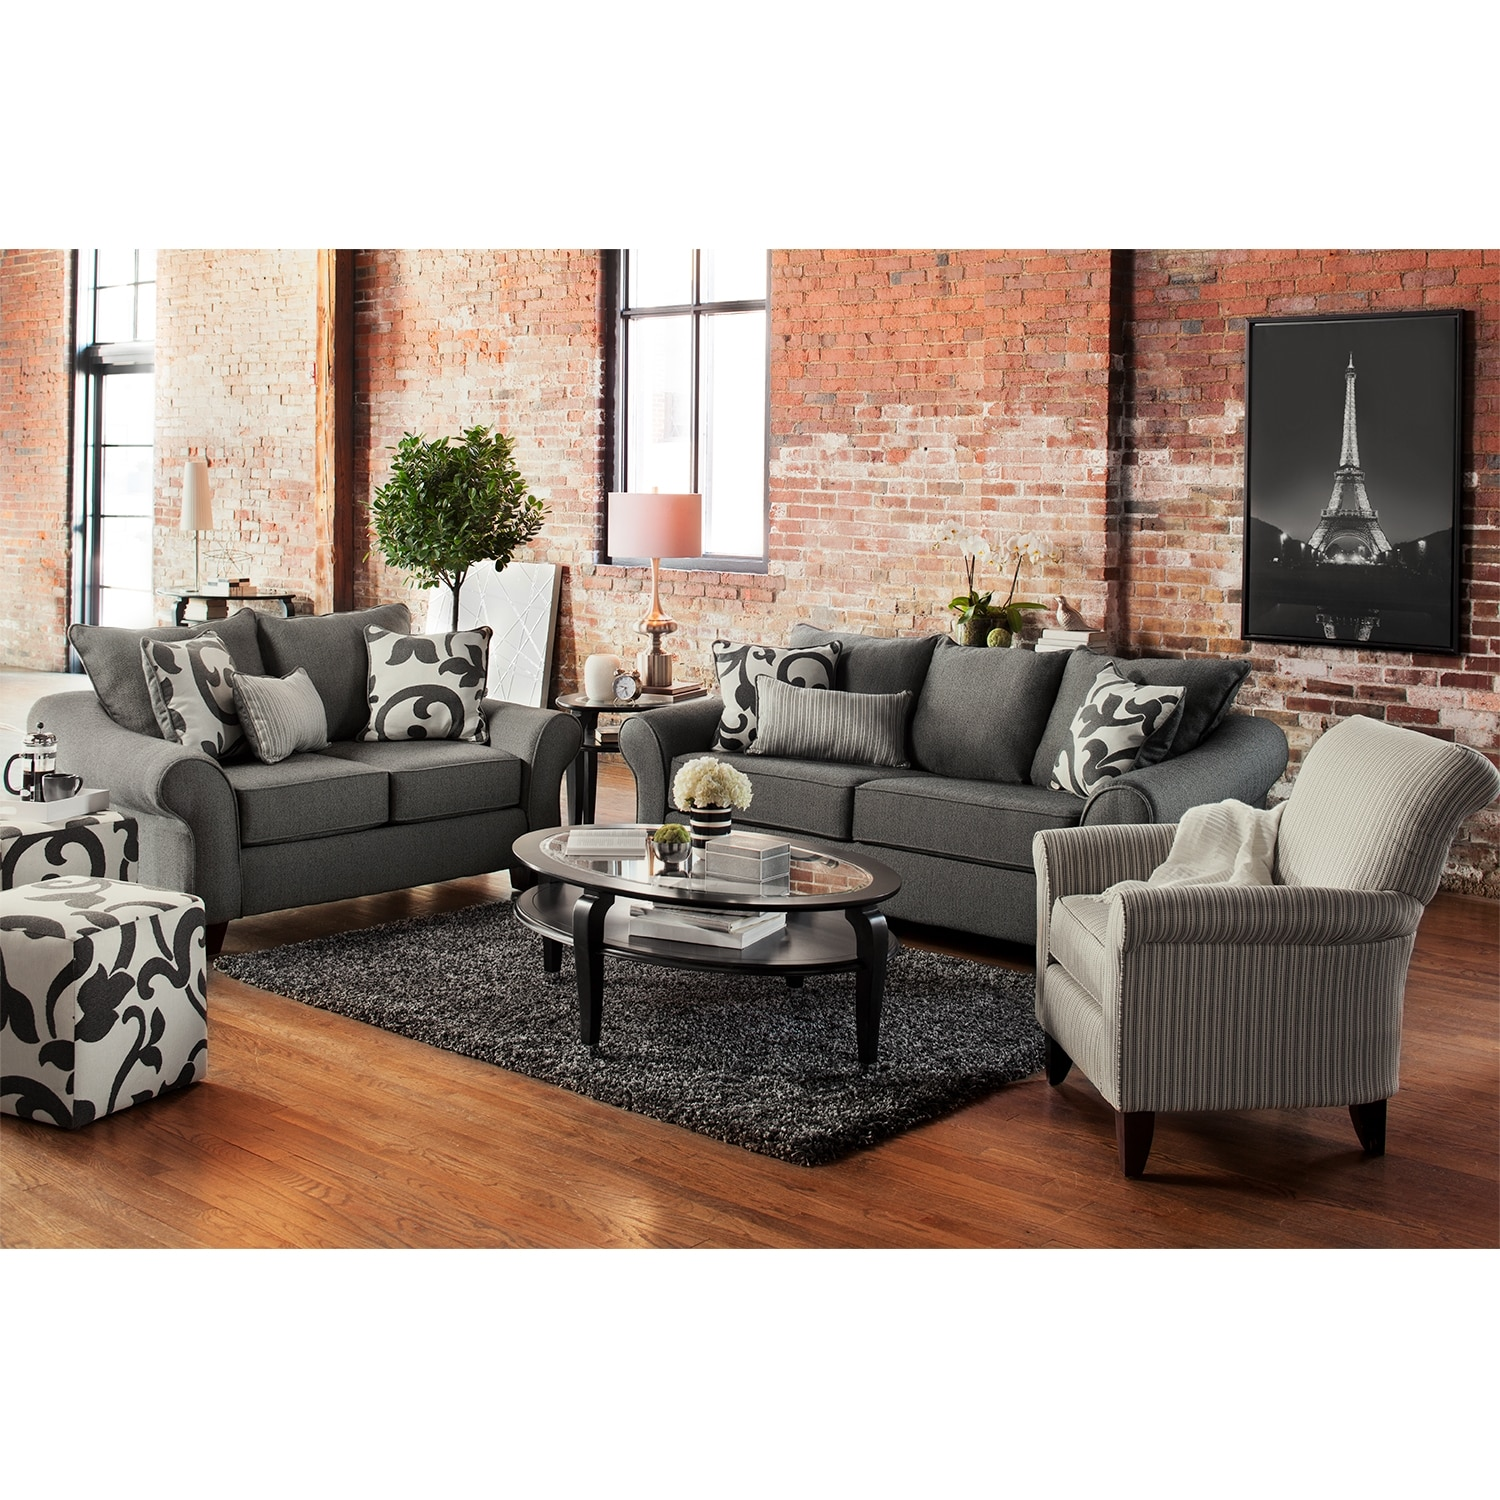 Colette sofa gray value city furniture for Living room sofa